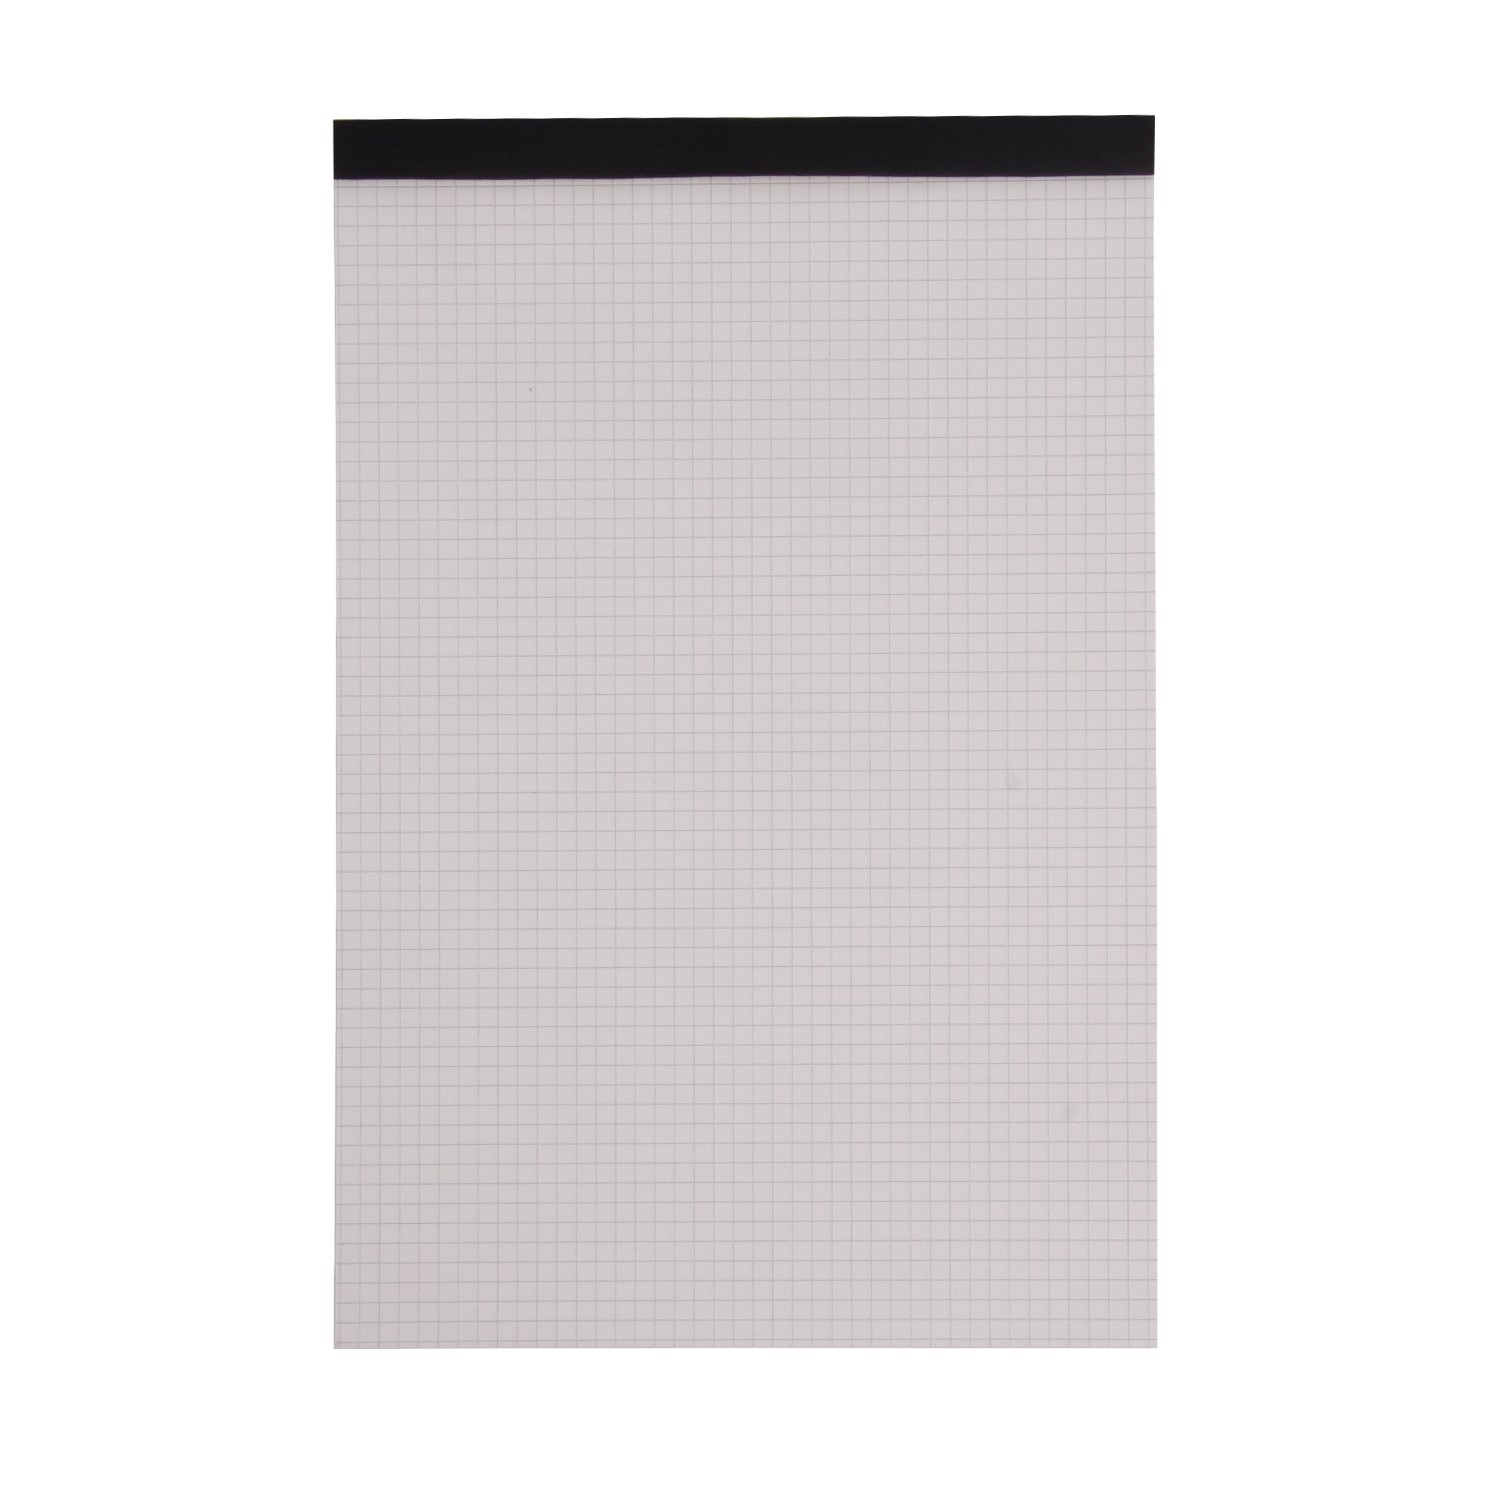 graph  u0026 data pads   online shopping for clothing  shoes